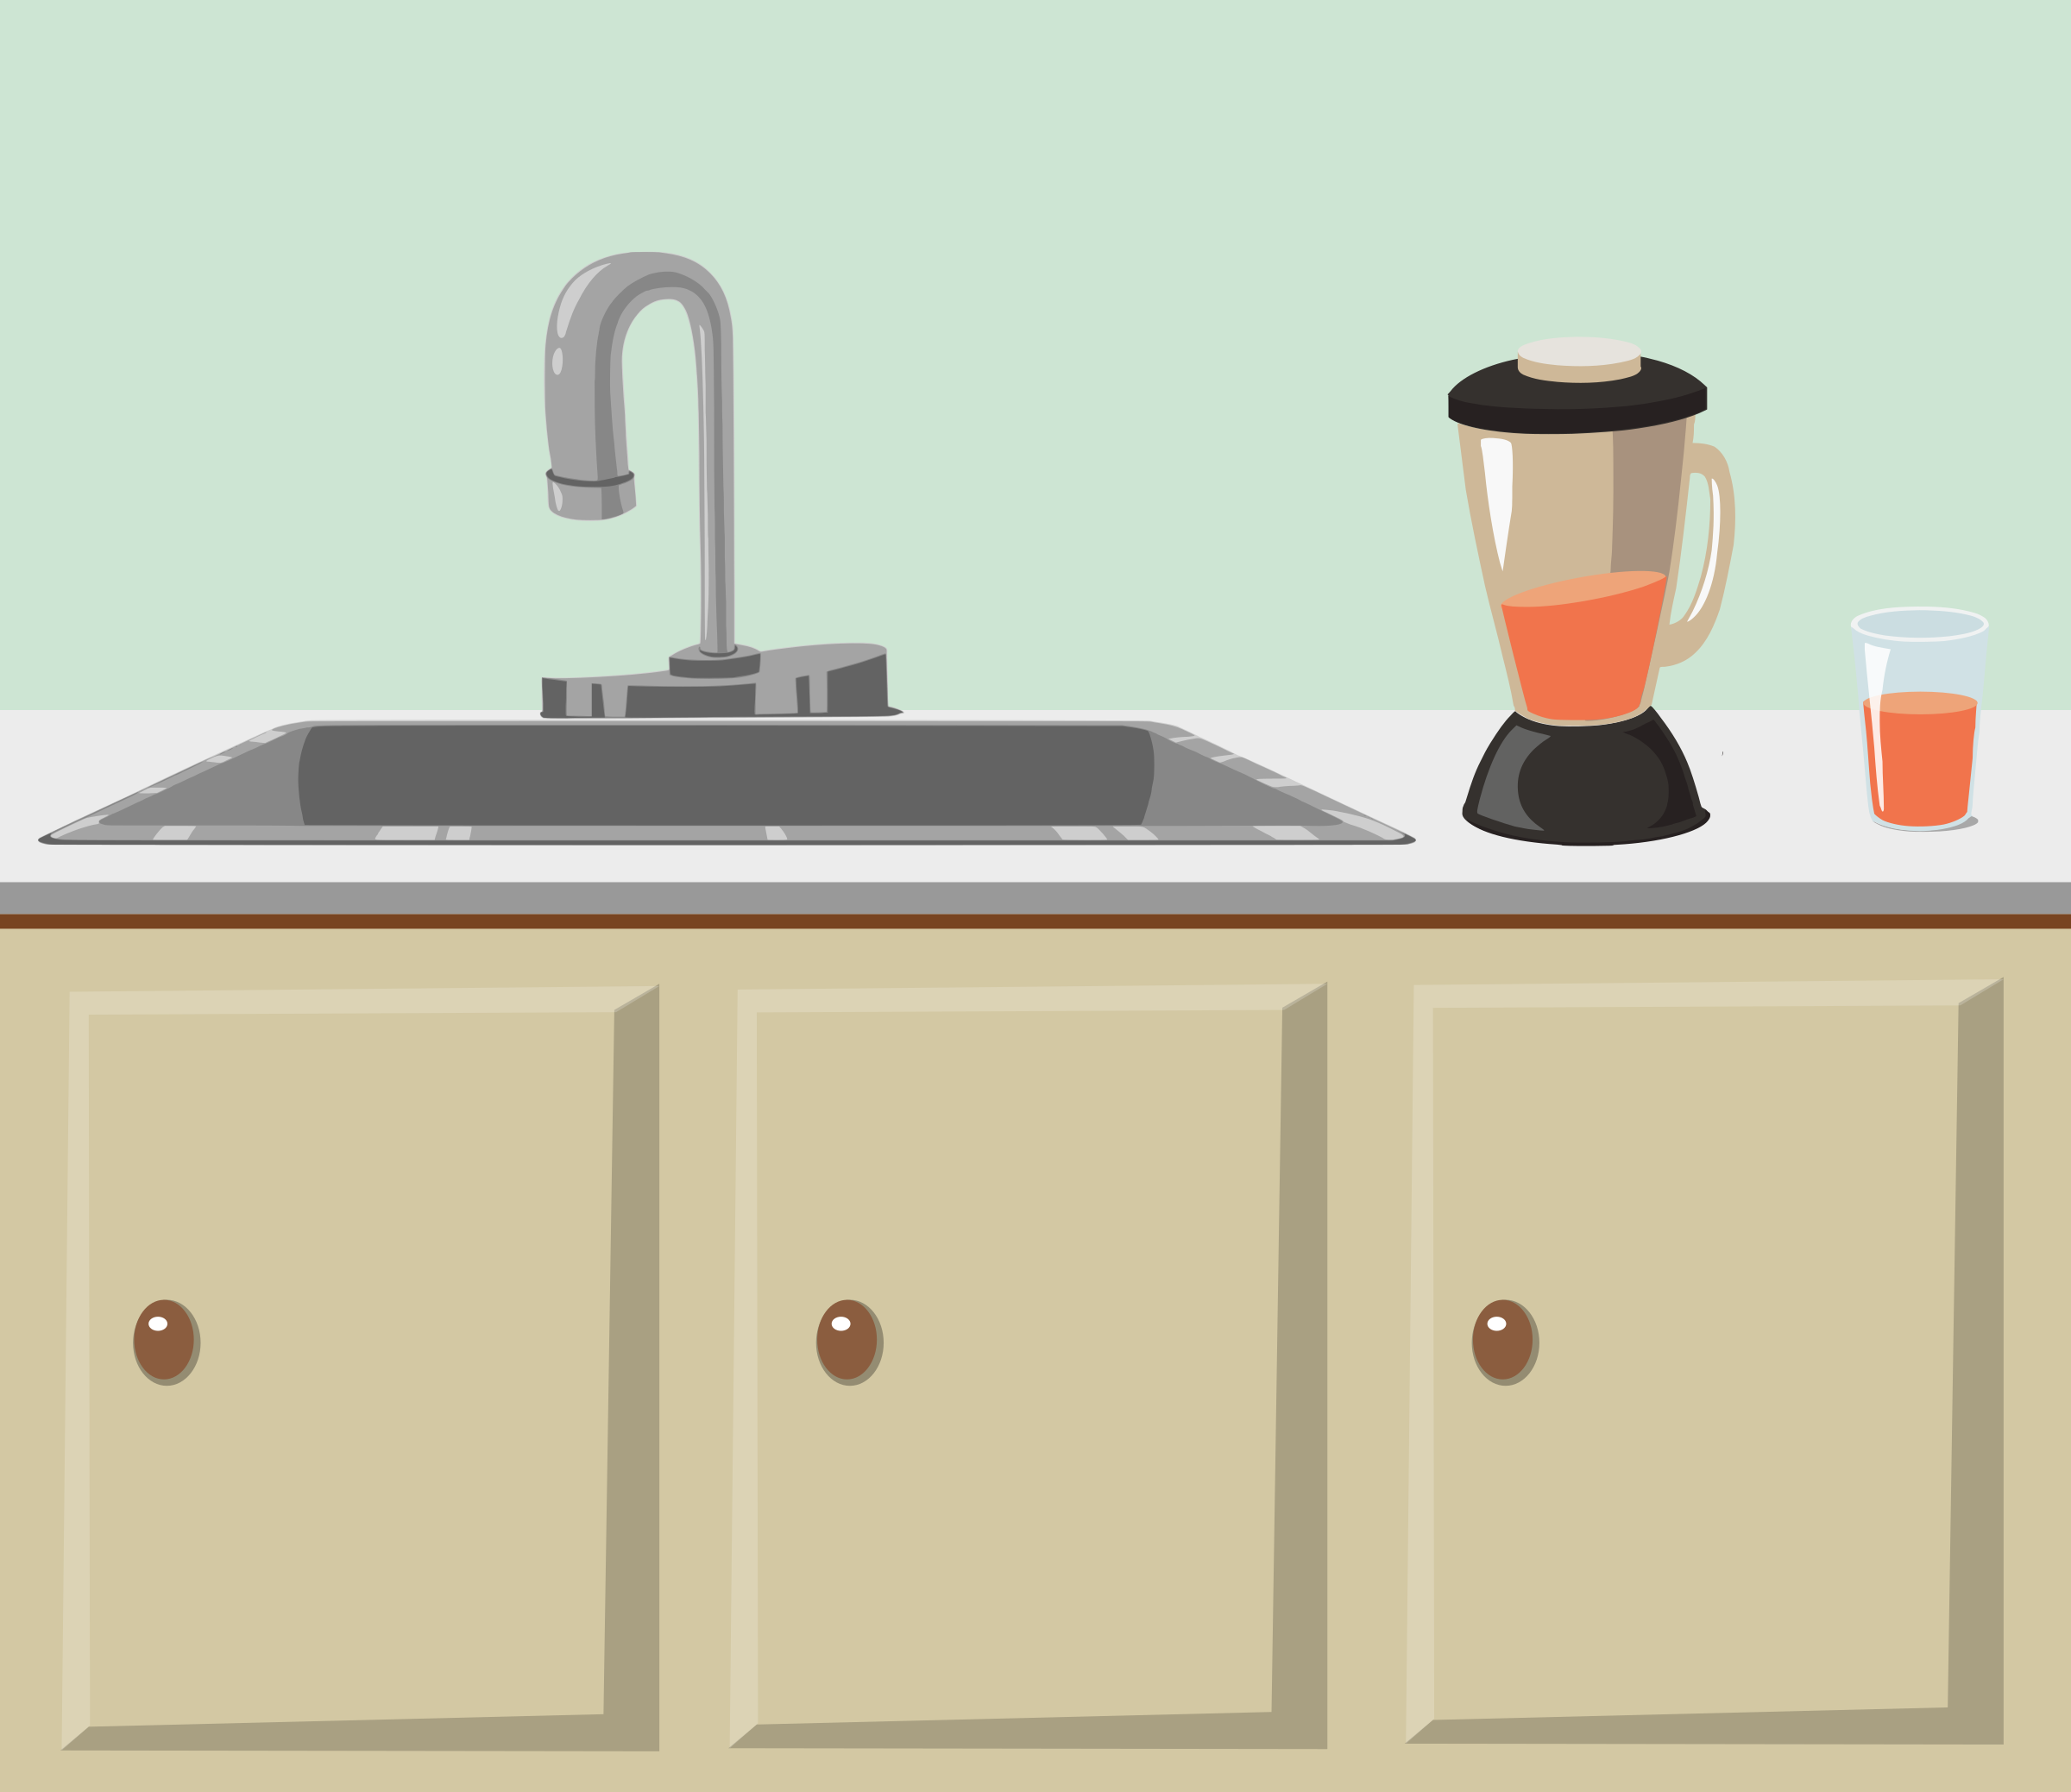 Kitchen counter and sink from Glitch by anarres